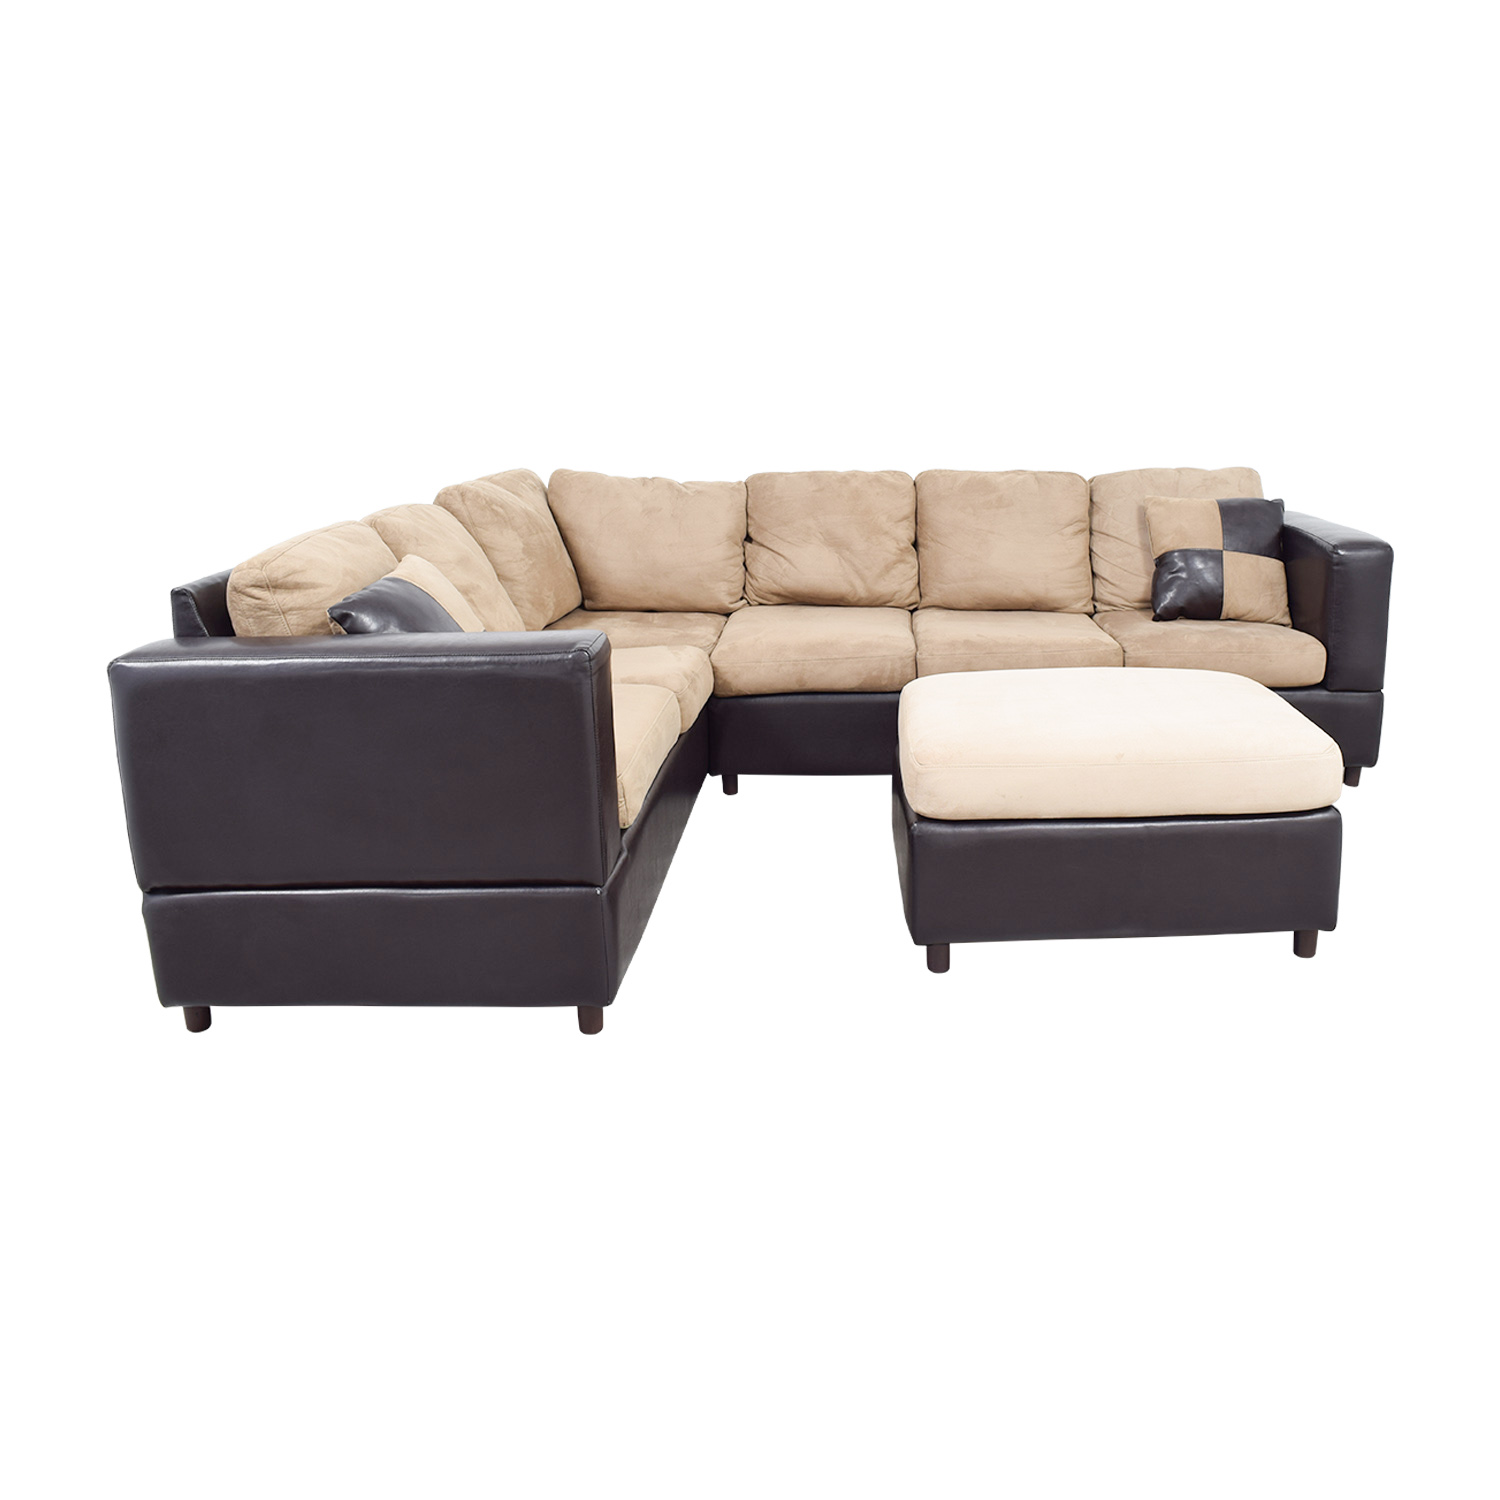 Phenomenal 66 Off Jennifer Furniture Jennifer Furniture Brown Leather And Tan Micro Suede L Sectional With Ottoman Sofas Gmtry Best Dining Table And Chair Ideas Images Gmtryco